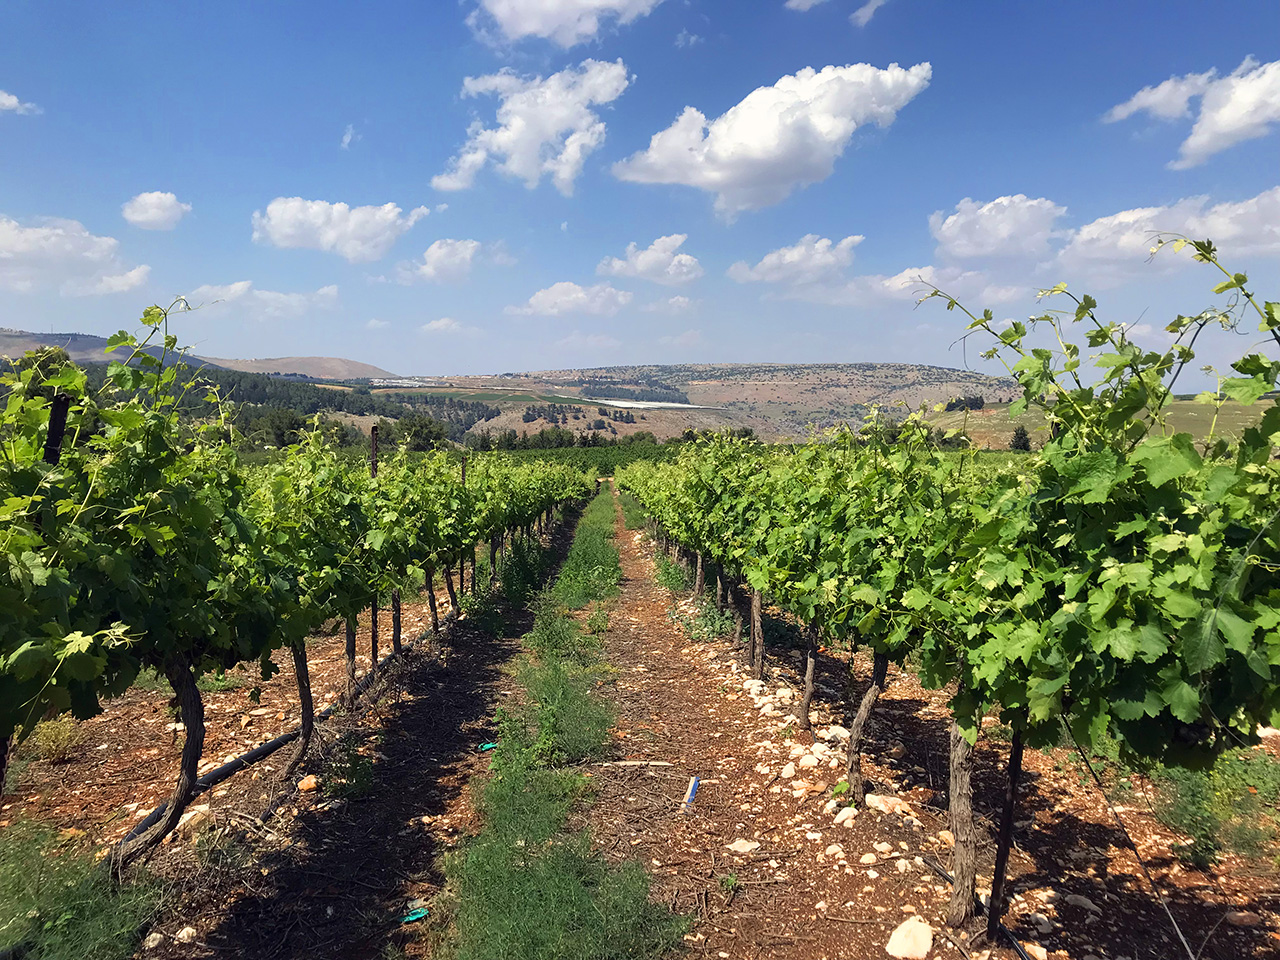 A vineyard in Israel. (Photo/Courtesy Jeff Morgan)